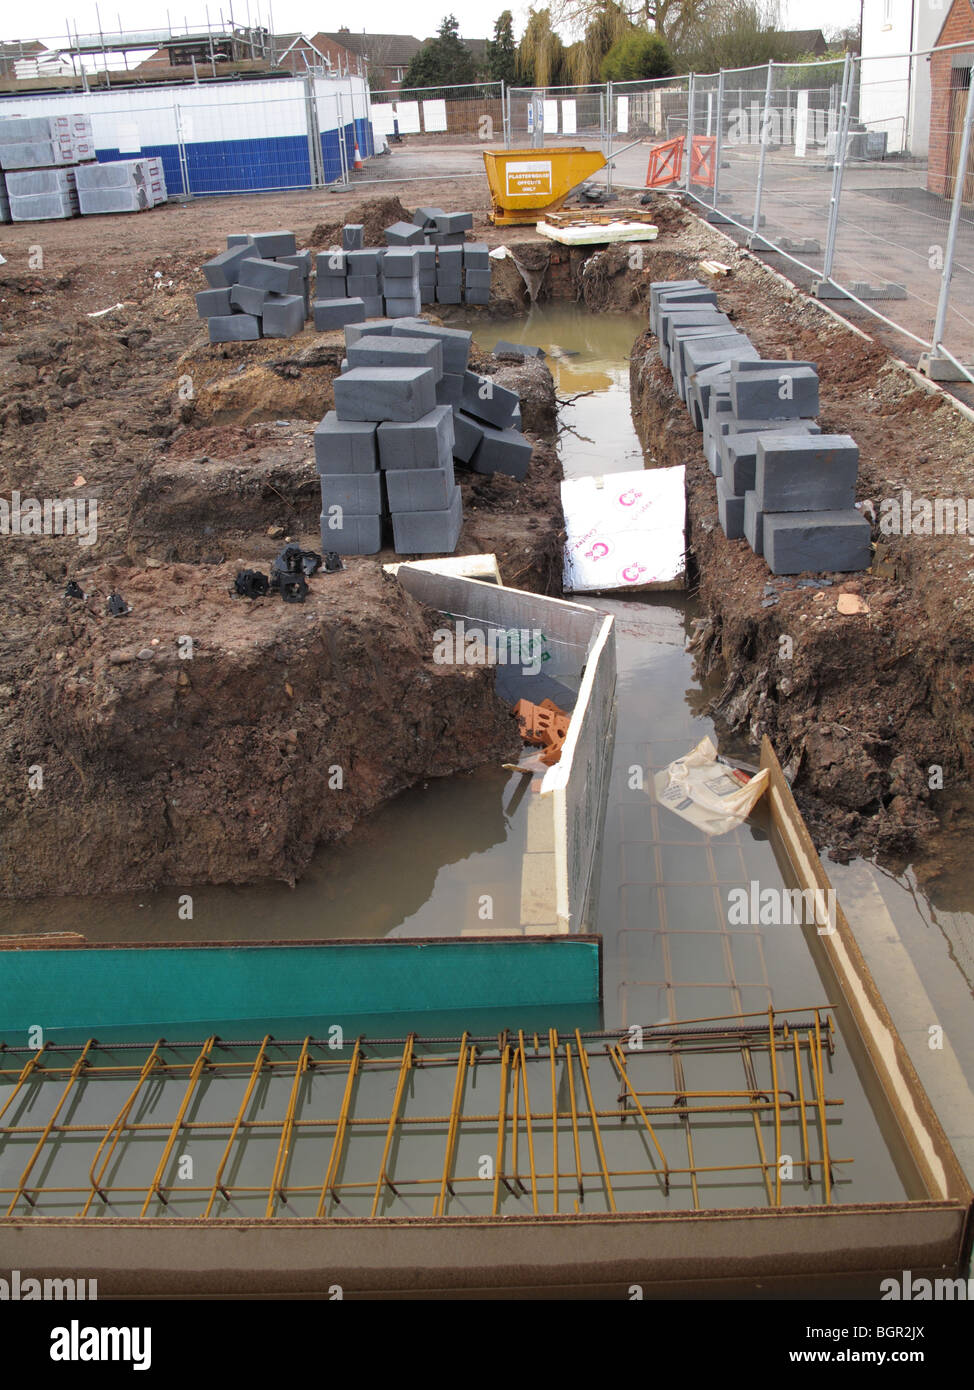 Flooded foundations on a construction site in the U.K. - Stock Image